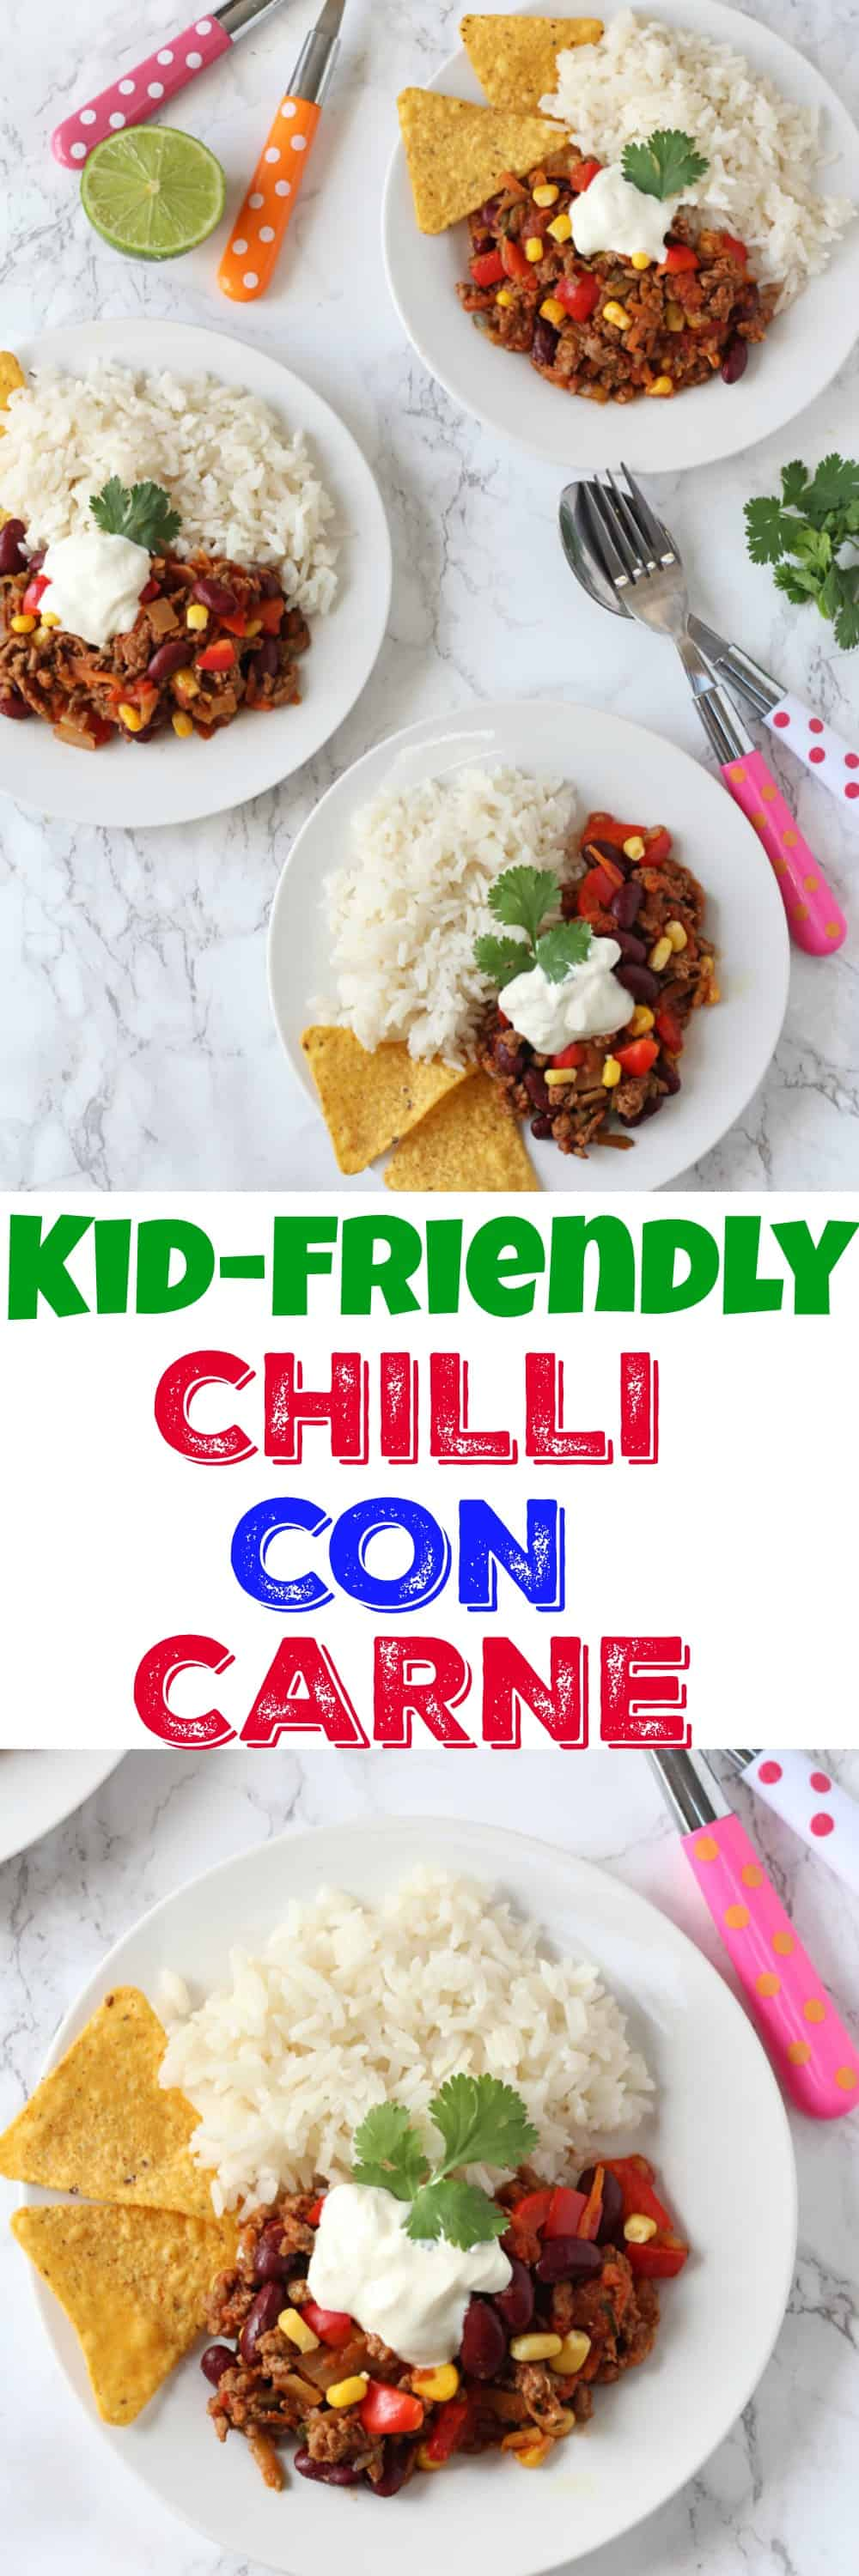 A tasty and mild Chilli Con Carne recipe for kids that's packed full of lots of vegetables too!